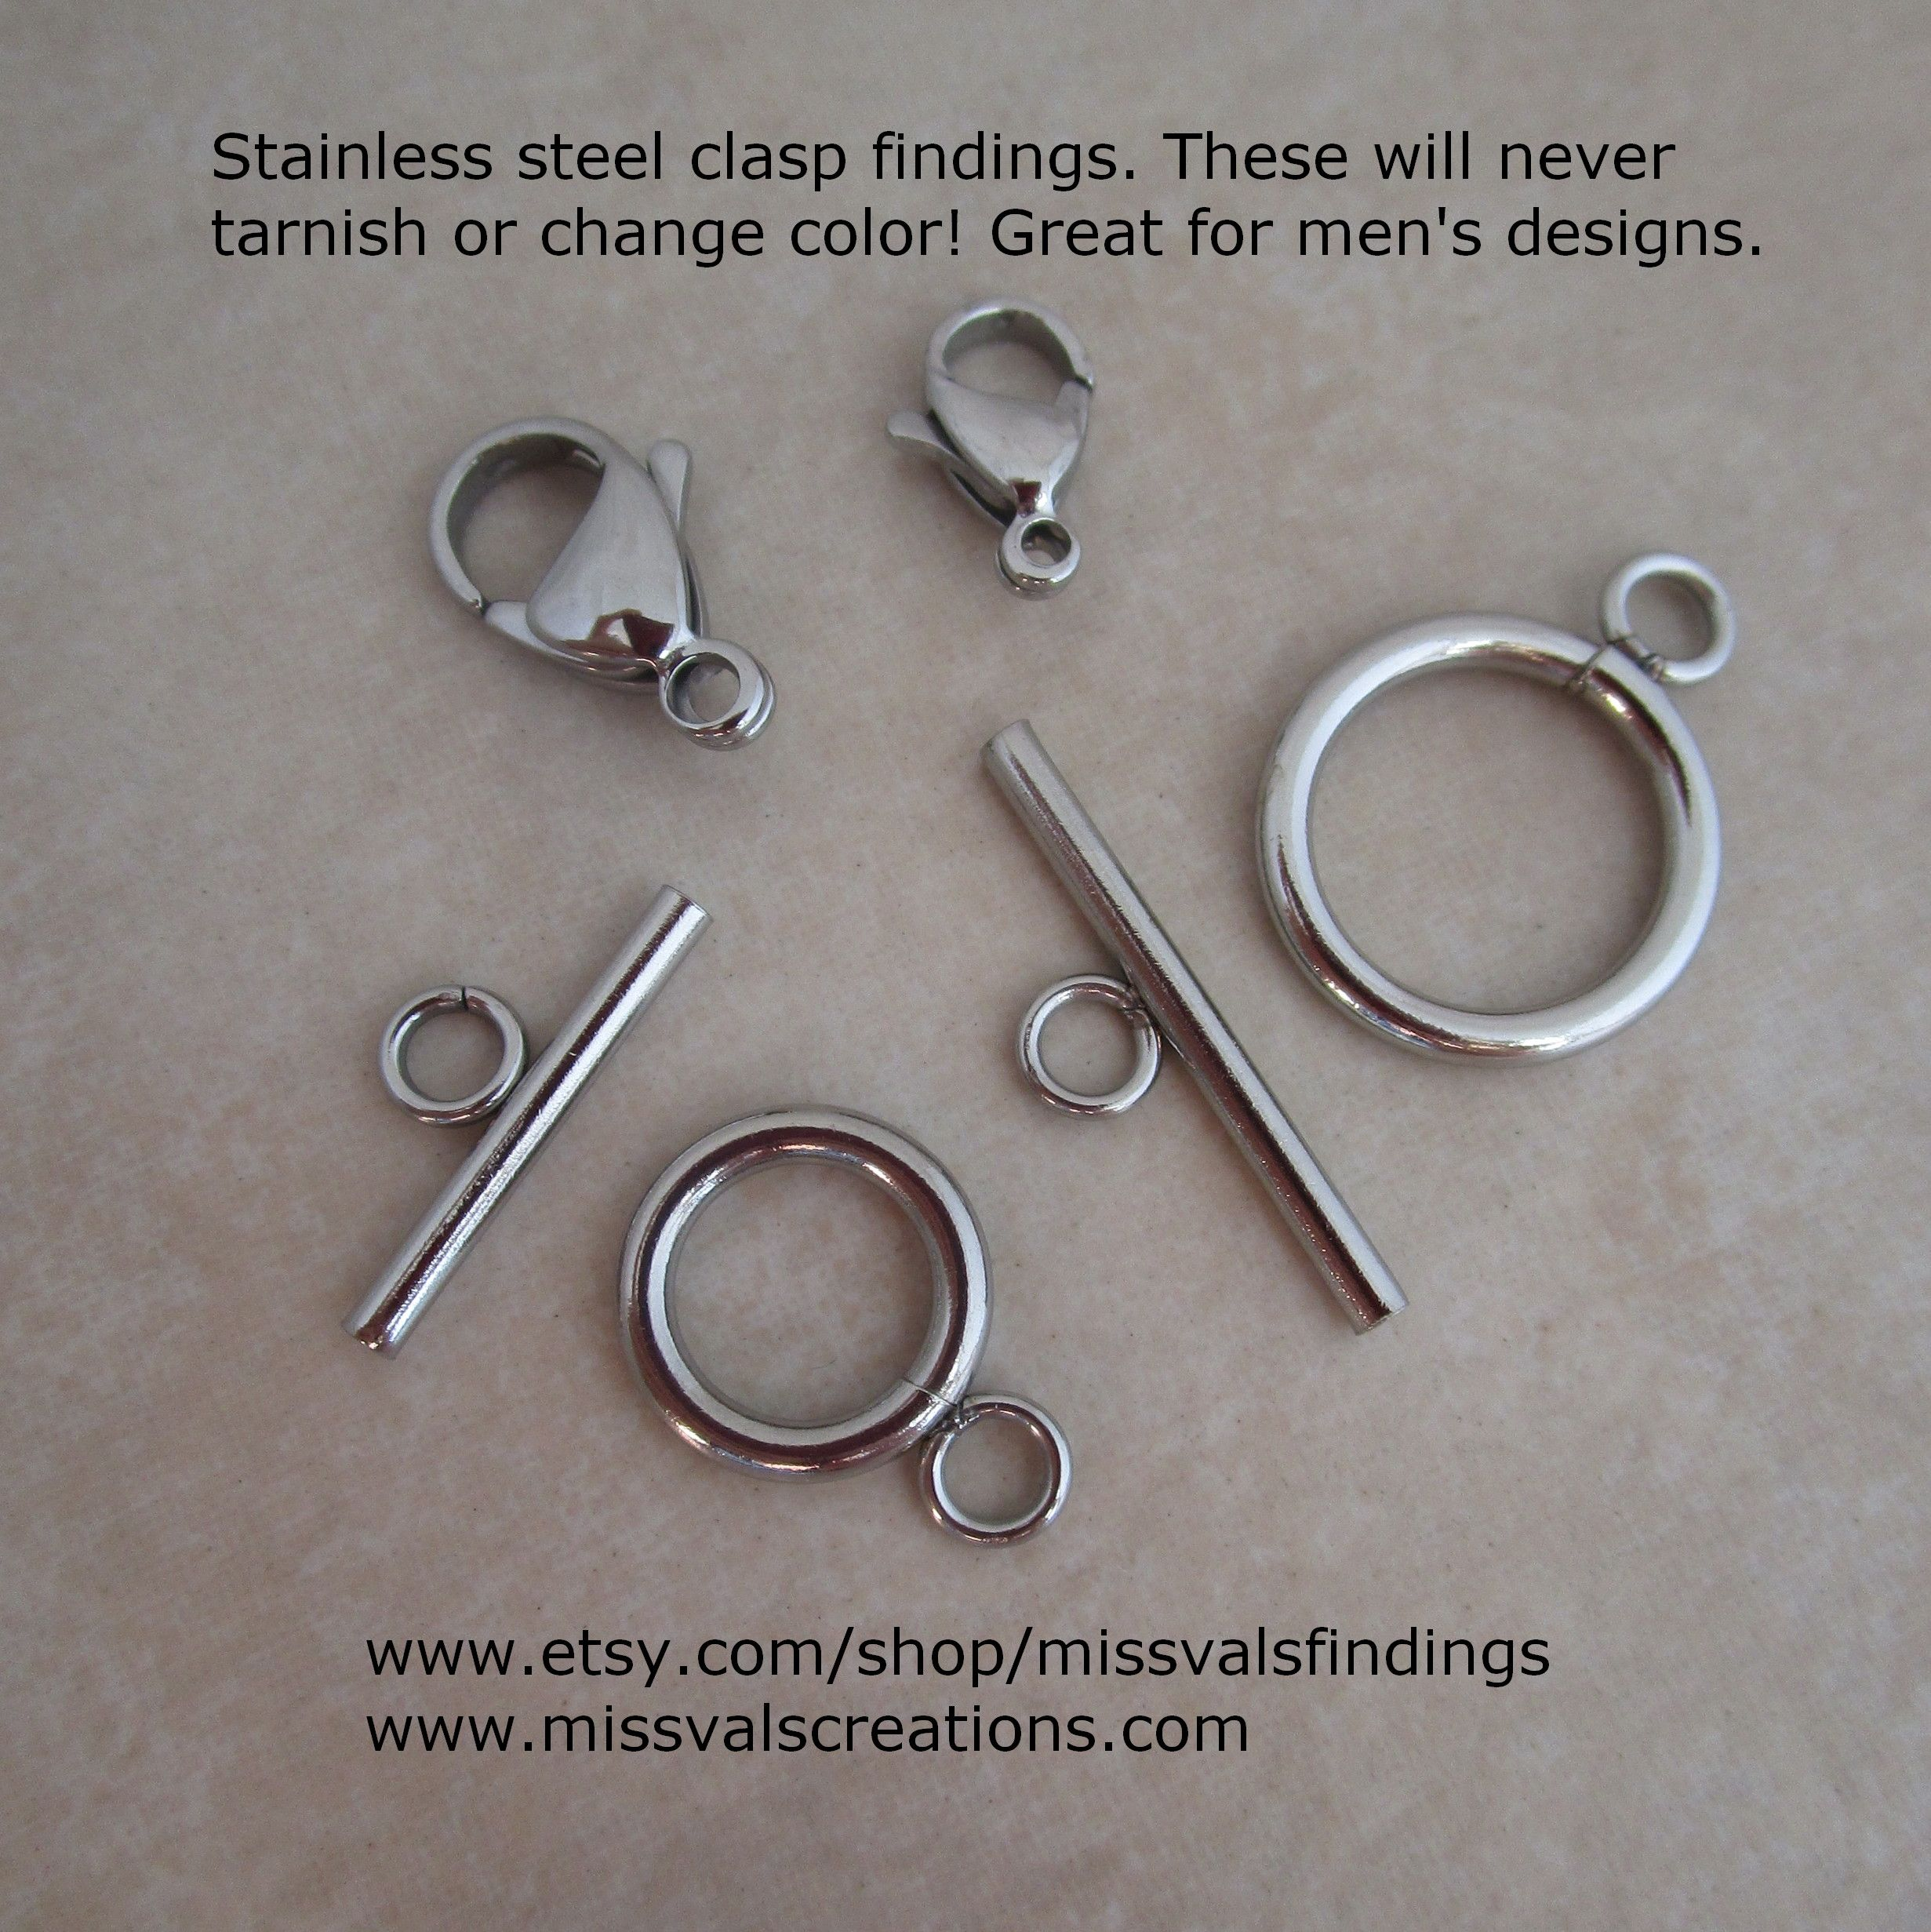 Stainless Steel Clasps These Will Never Tarnish Or Rust Great